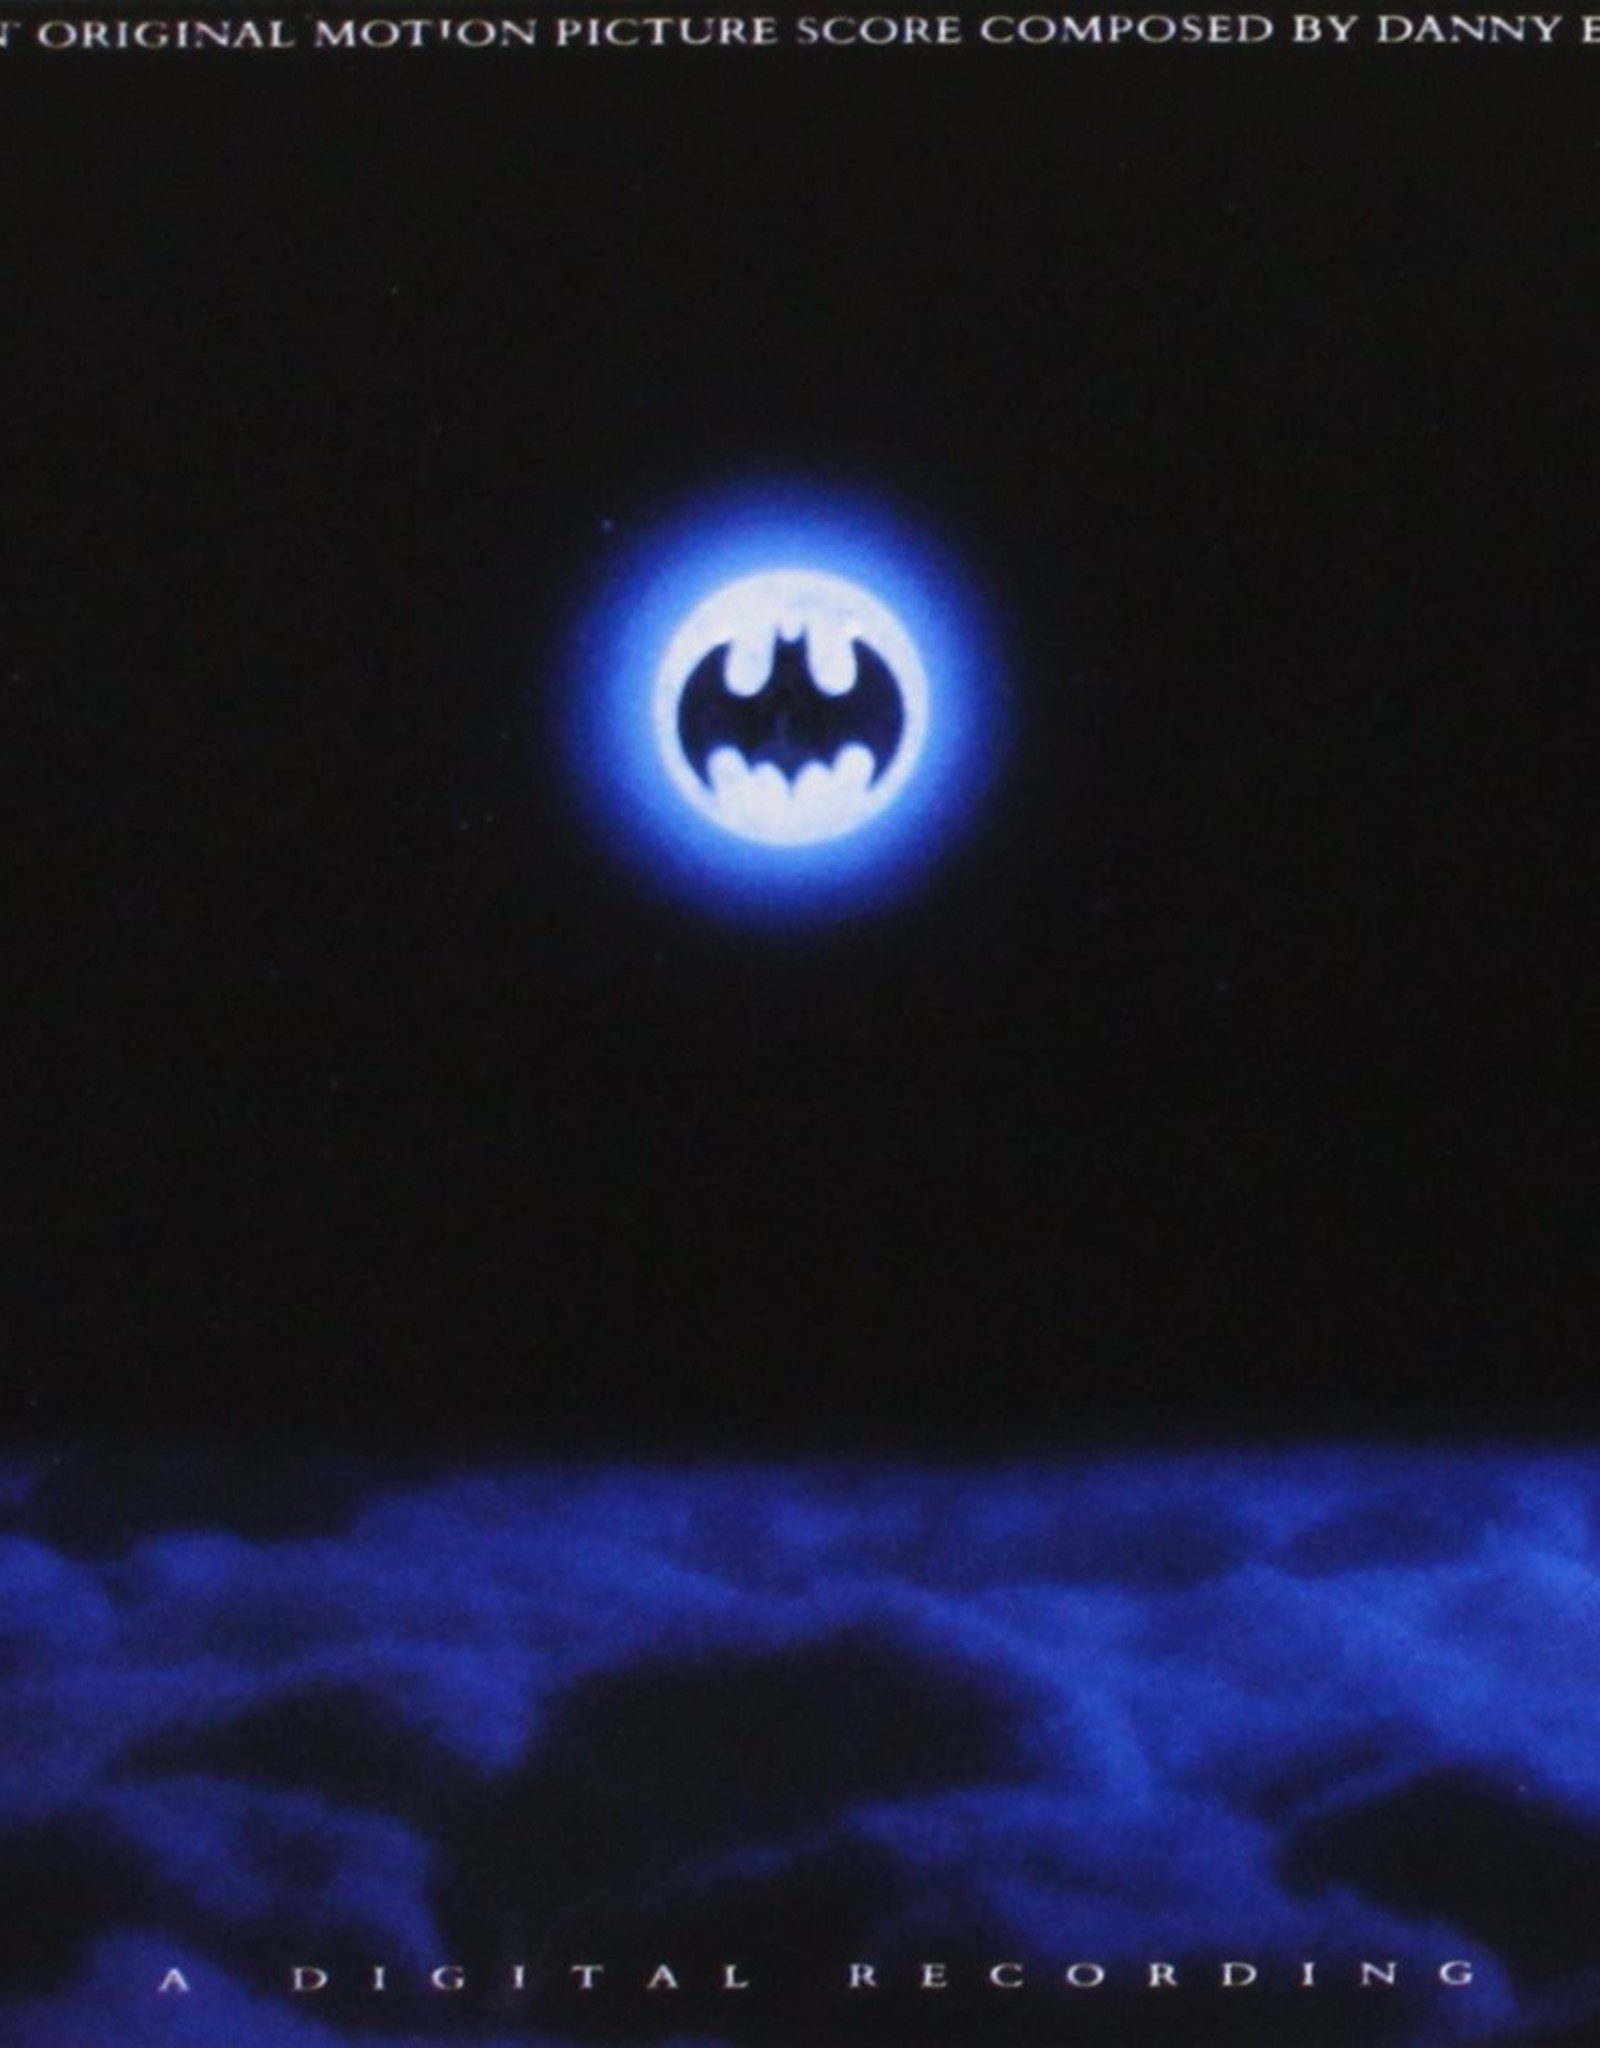 Danny Elfman - Batman Original Motion Picture Score